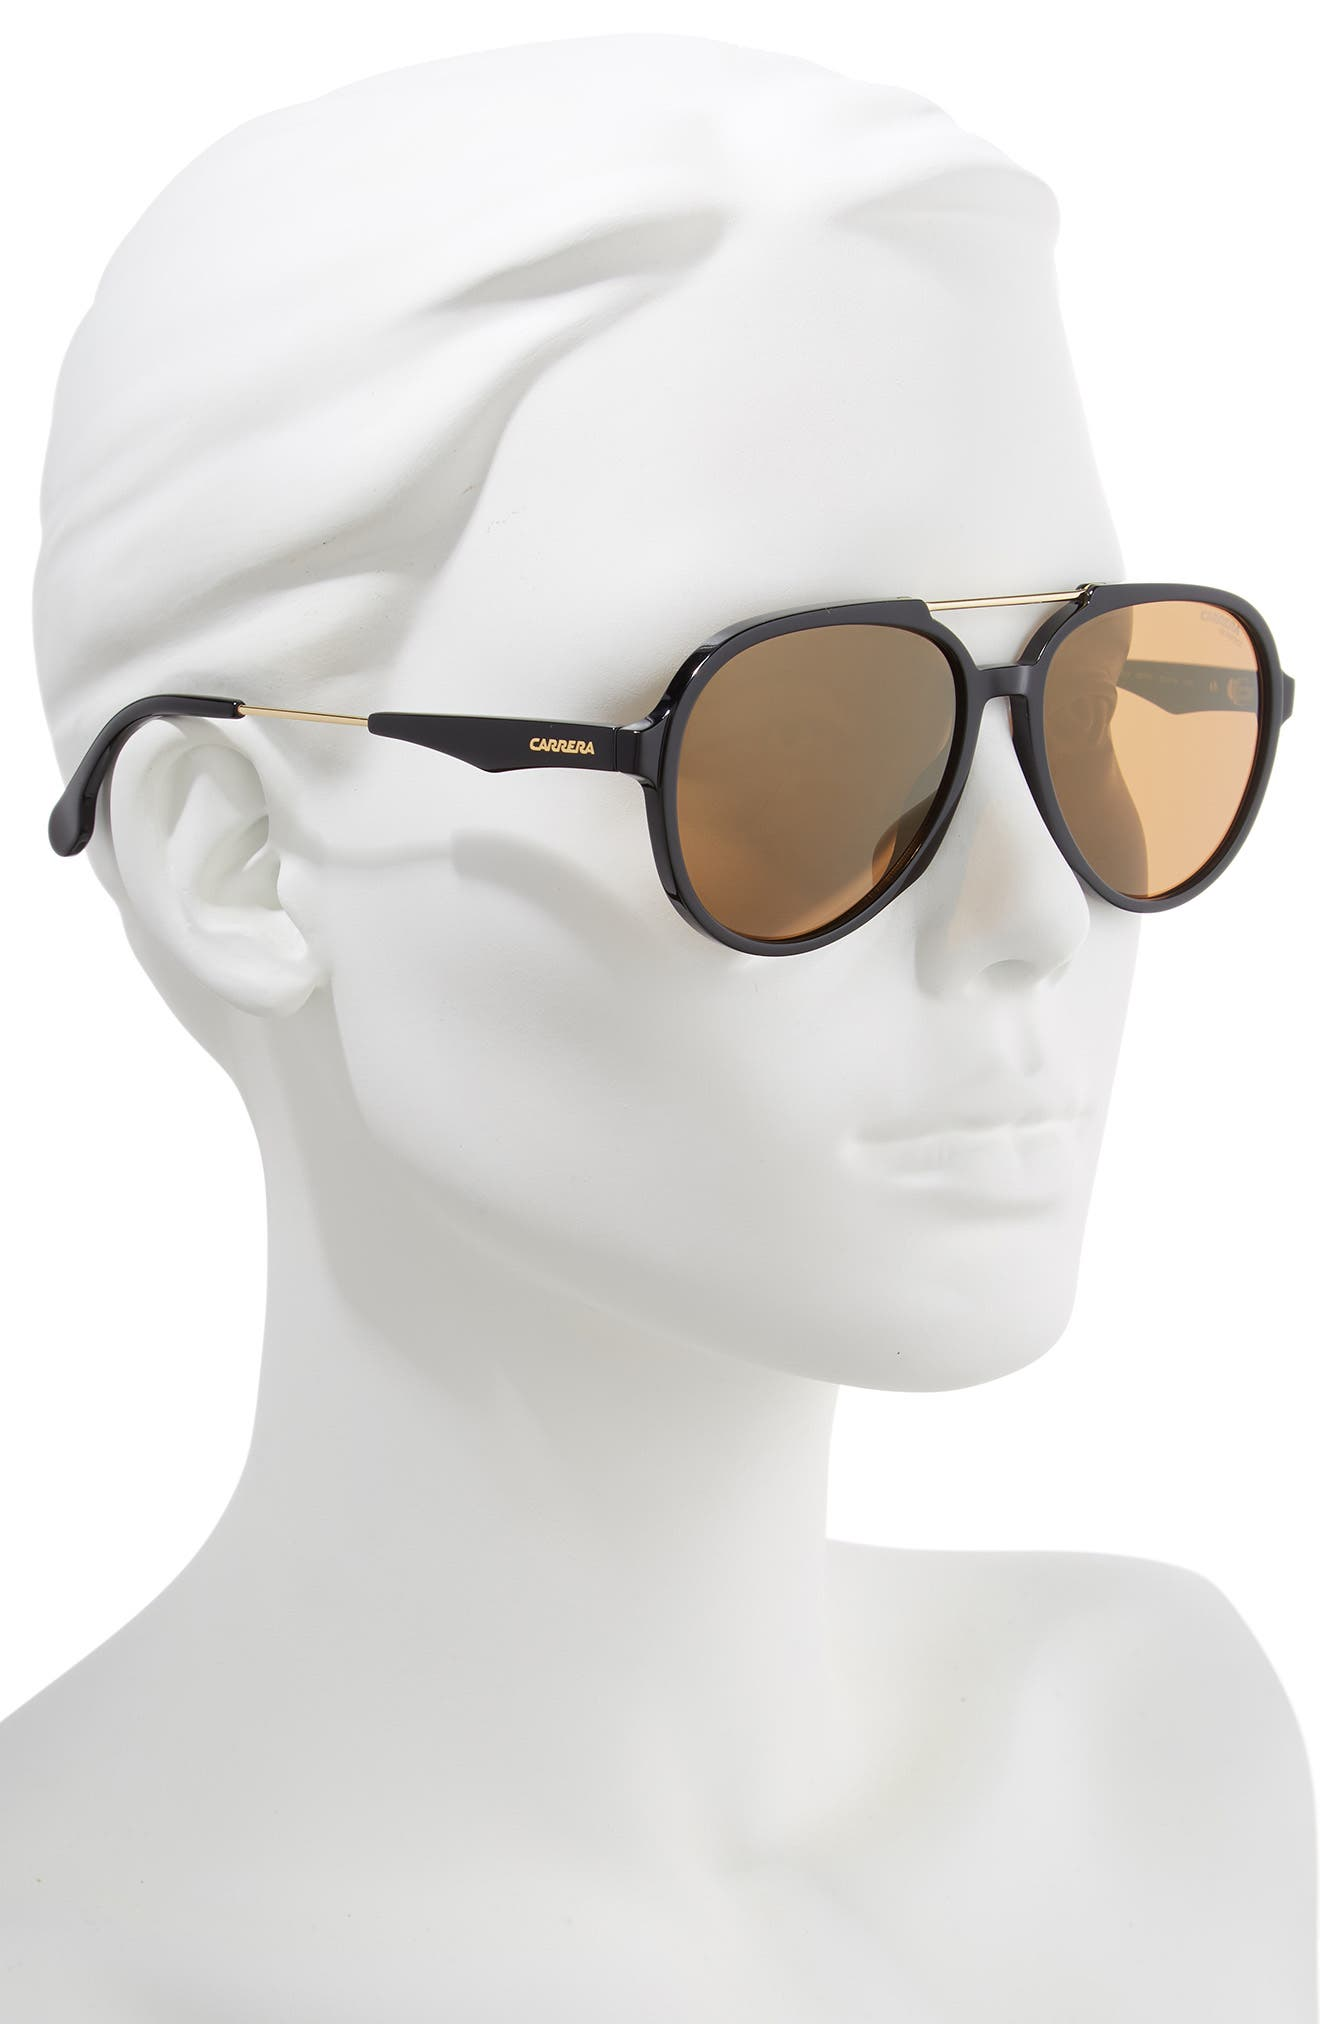 56mm Aviator Sunglasses,                             Alternate thumbnail 2, color,                             BLACK